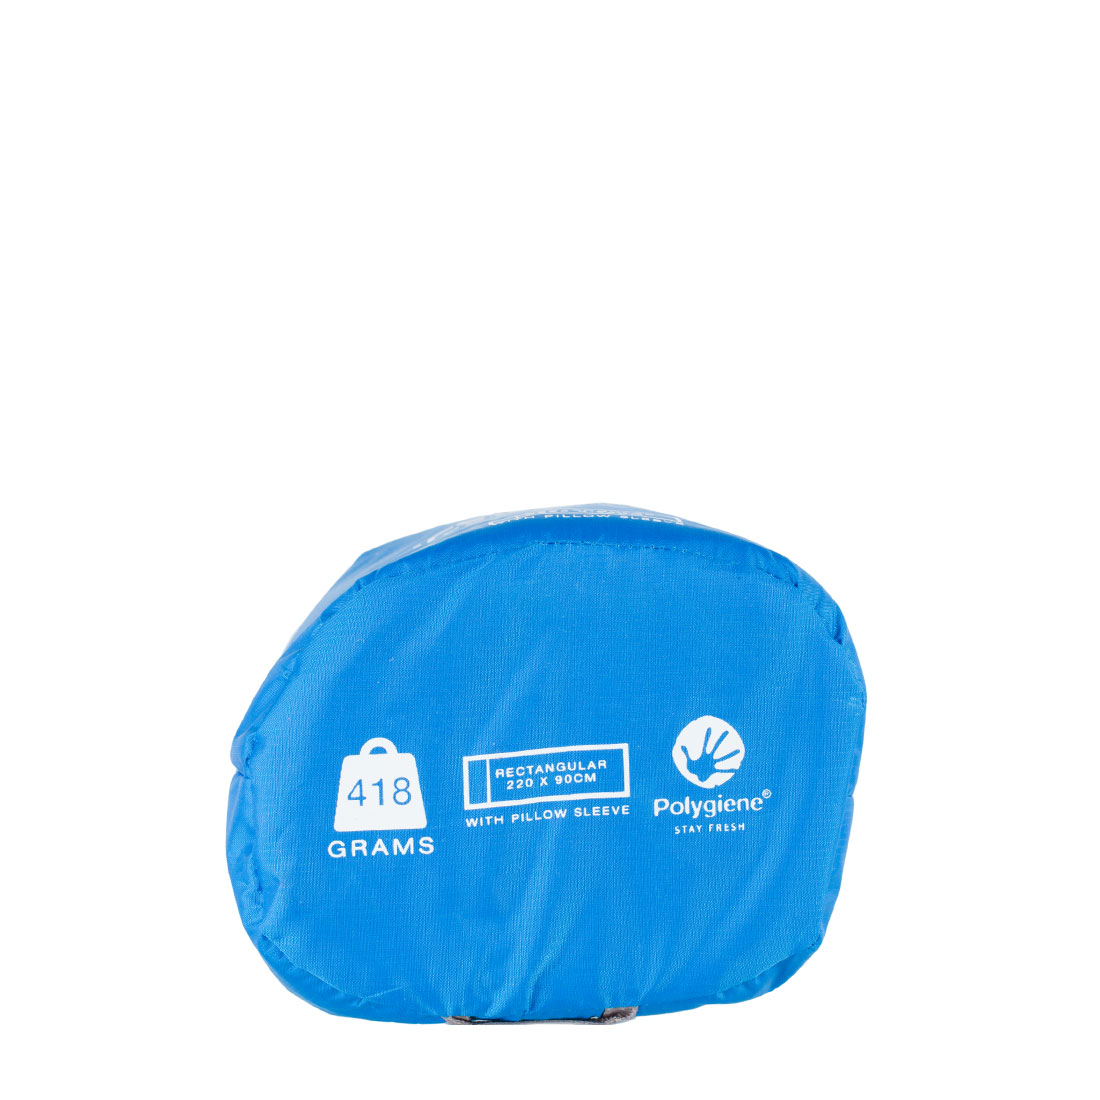 65540_cotton-sleeping-bag-liner-rectangular-3